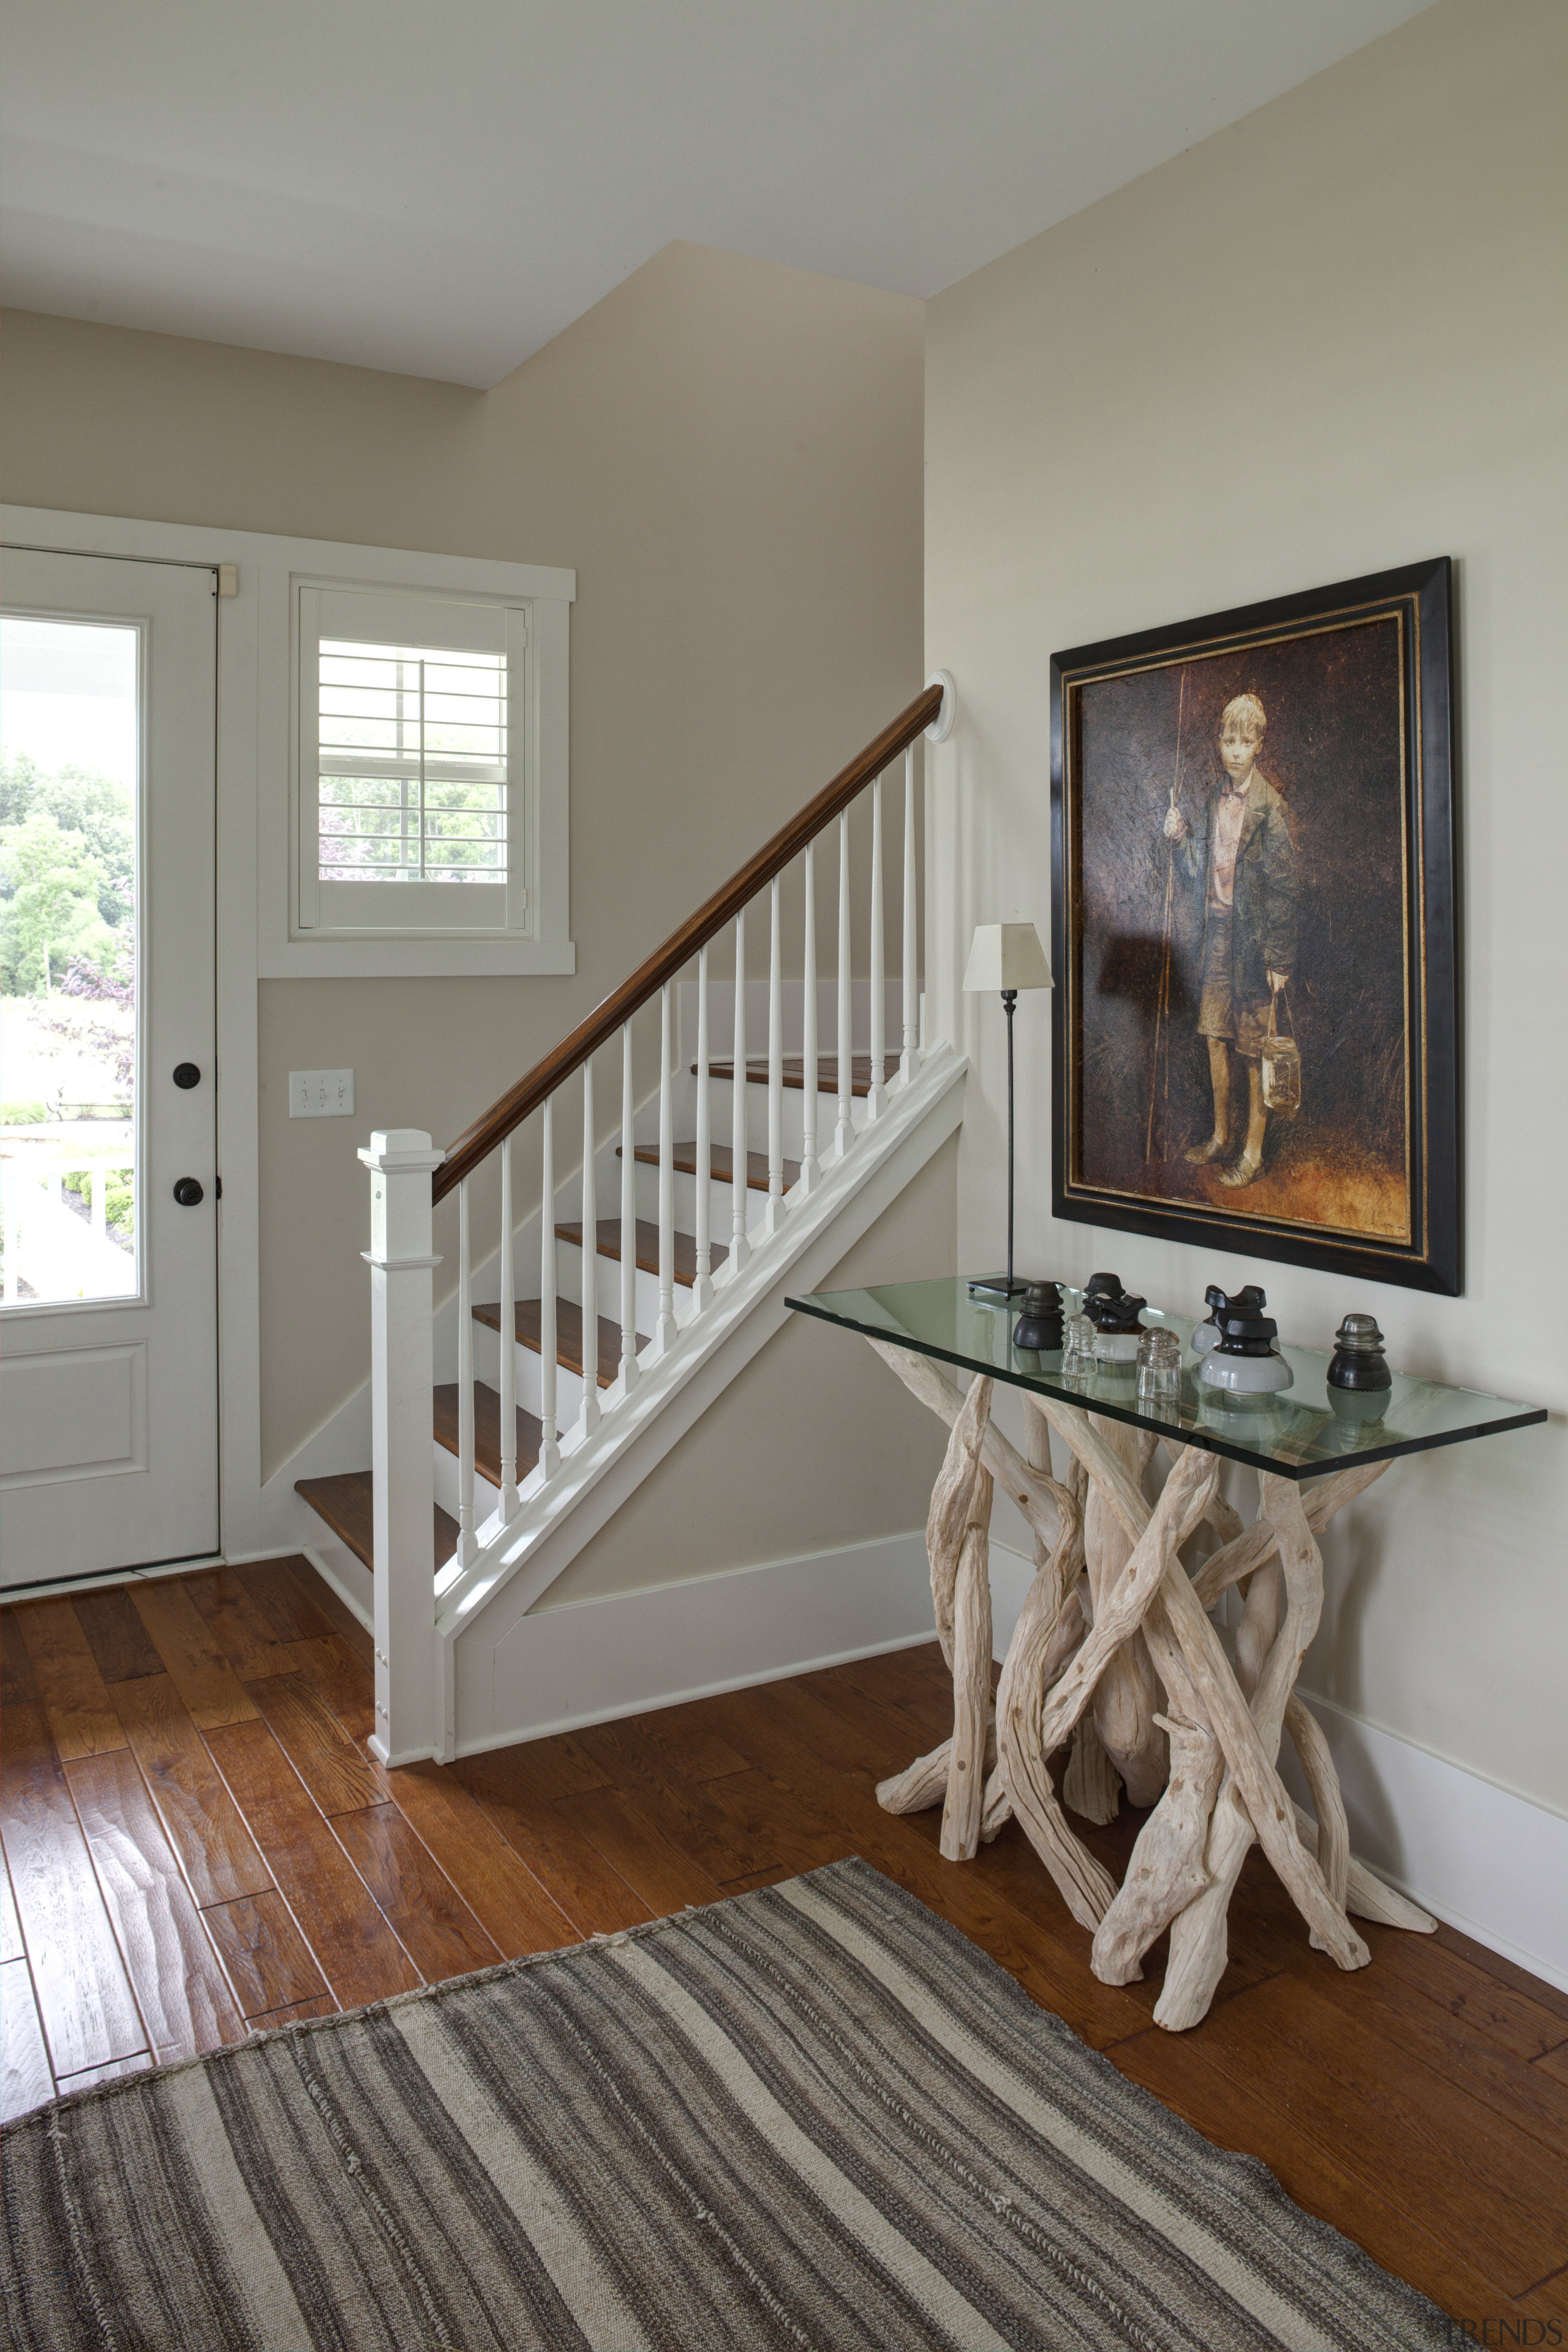 A stairway in the front entry of a baluster, bed, bed frame, floor, flooring, furniture, handrail, hardwood, home, house, interior design, laminate flooring, living room, product, room, stairs, table, wall, window, wood, wood flooring, wood stain, gray